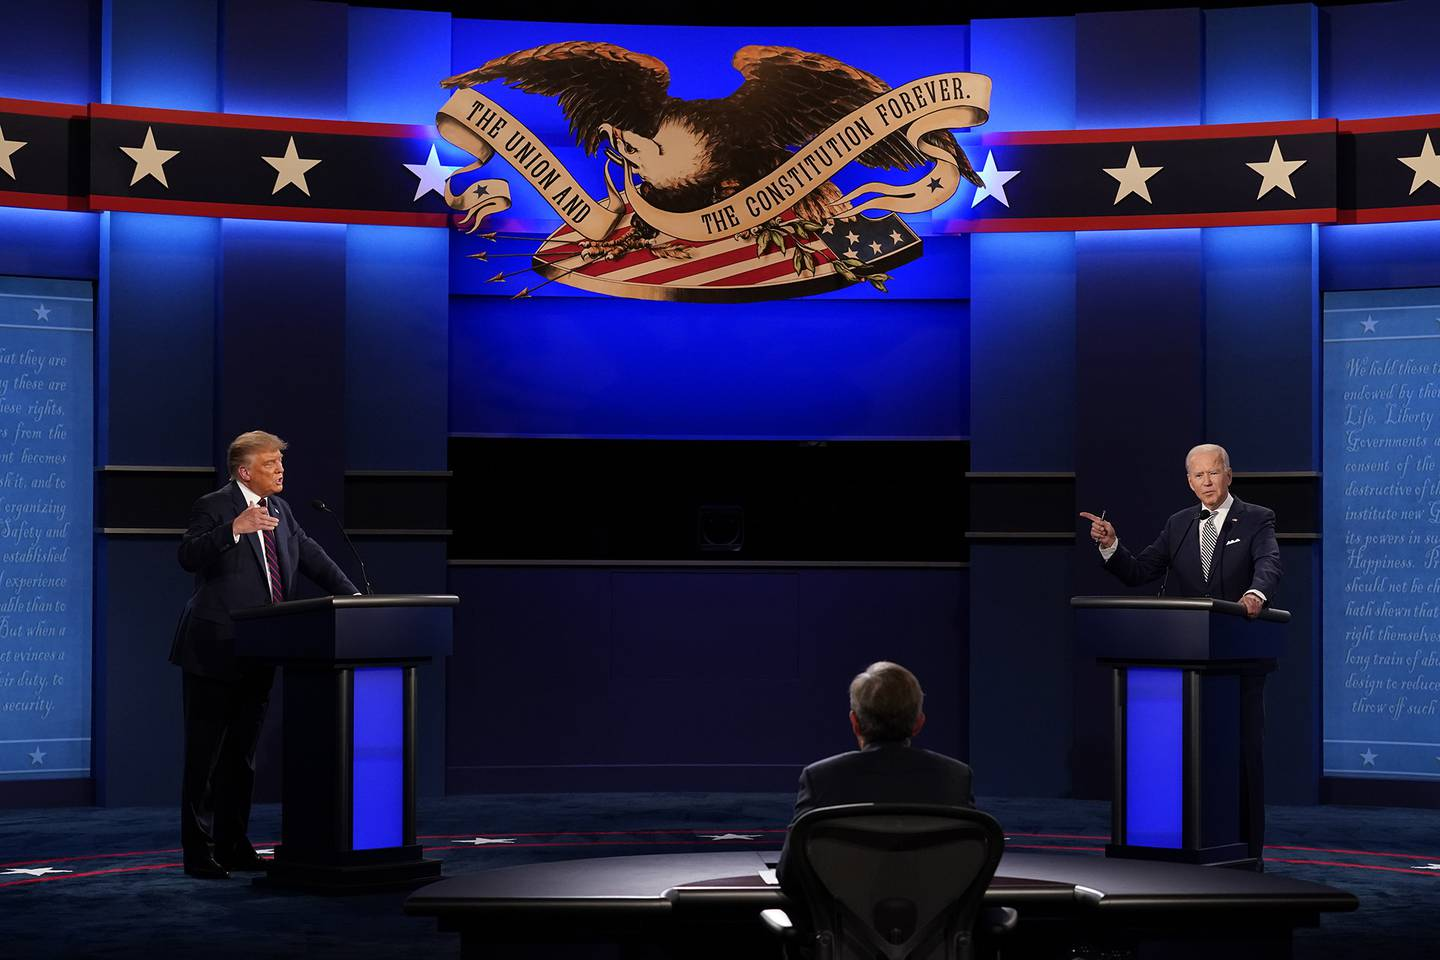 President Donald Trump, left, and Democratic presidential candidate former Vice President Joe Biden, right, with moderator Chris Wallace, center, of Fox News during the first presidential debate Tuesday, Sept. 29, 2020, at Case Western University and Cleveland Clinic, in Cleveland.